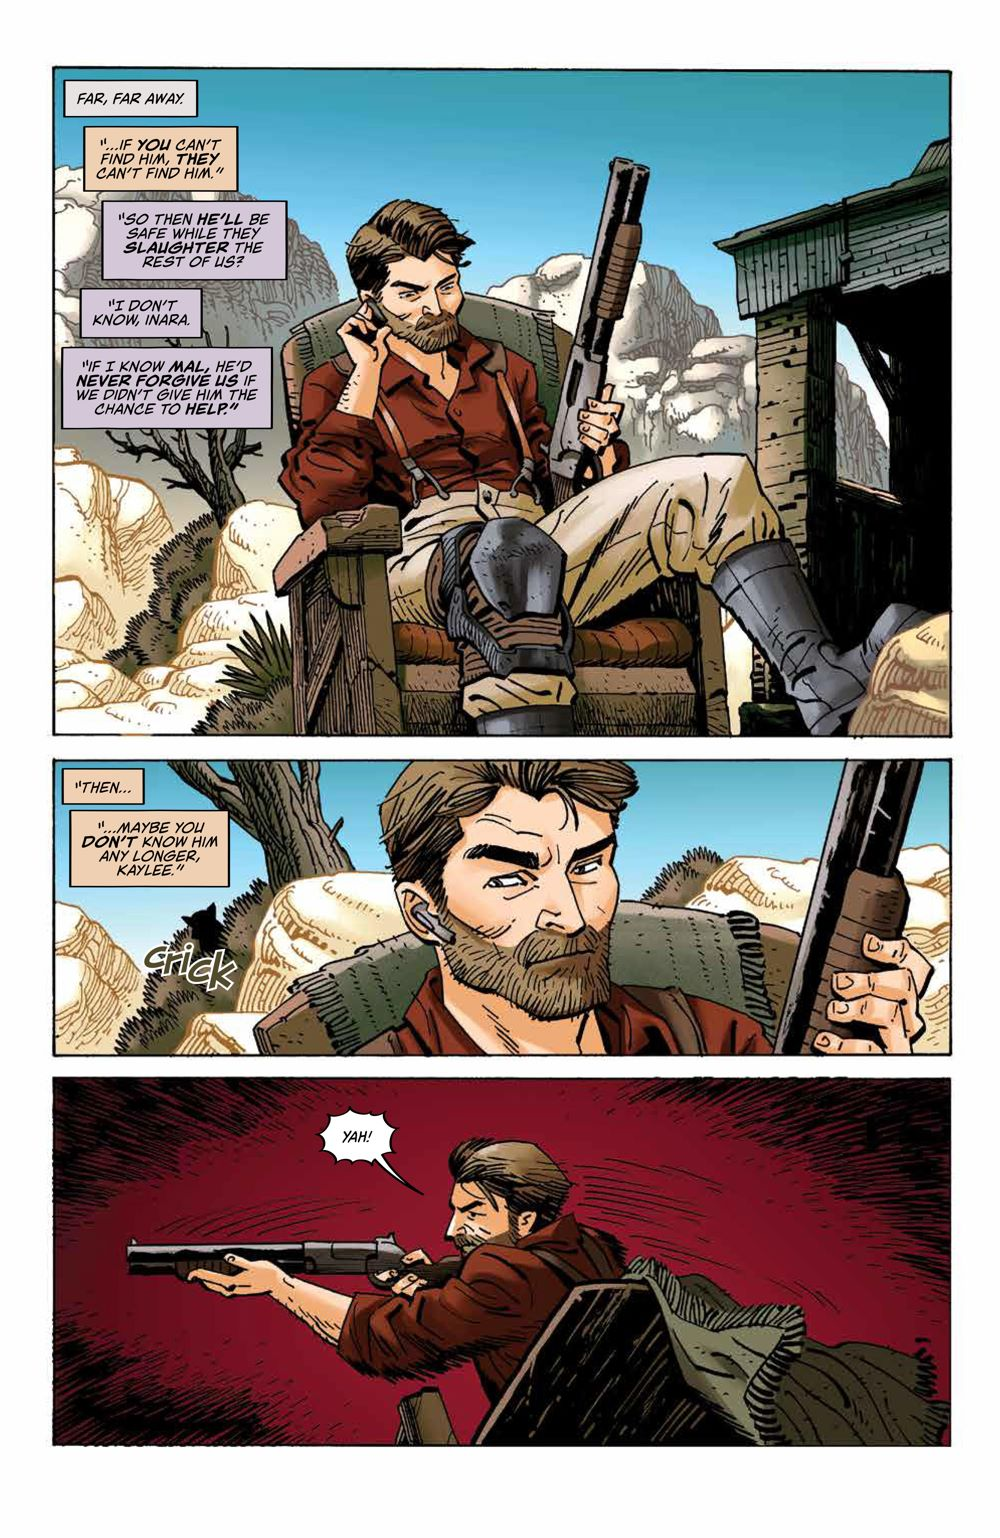 Firefly_027_PRESS_4 ComicList Previews: FIREFLY #27